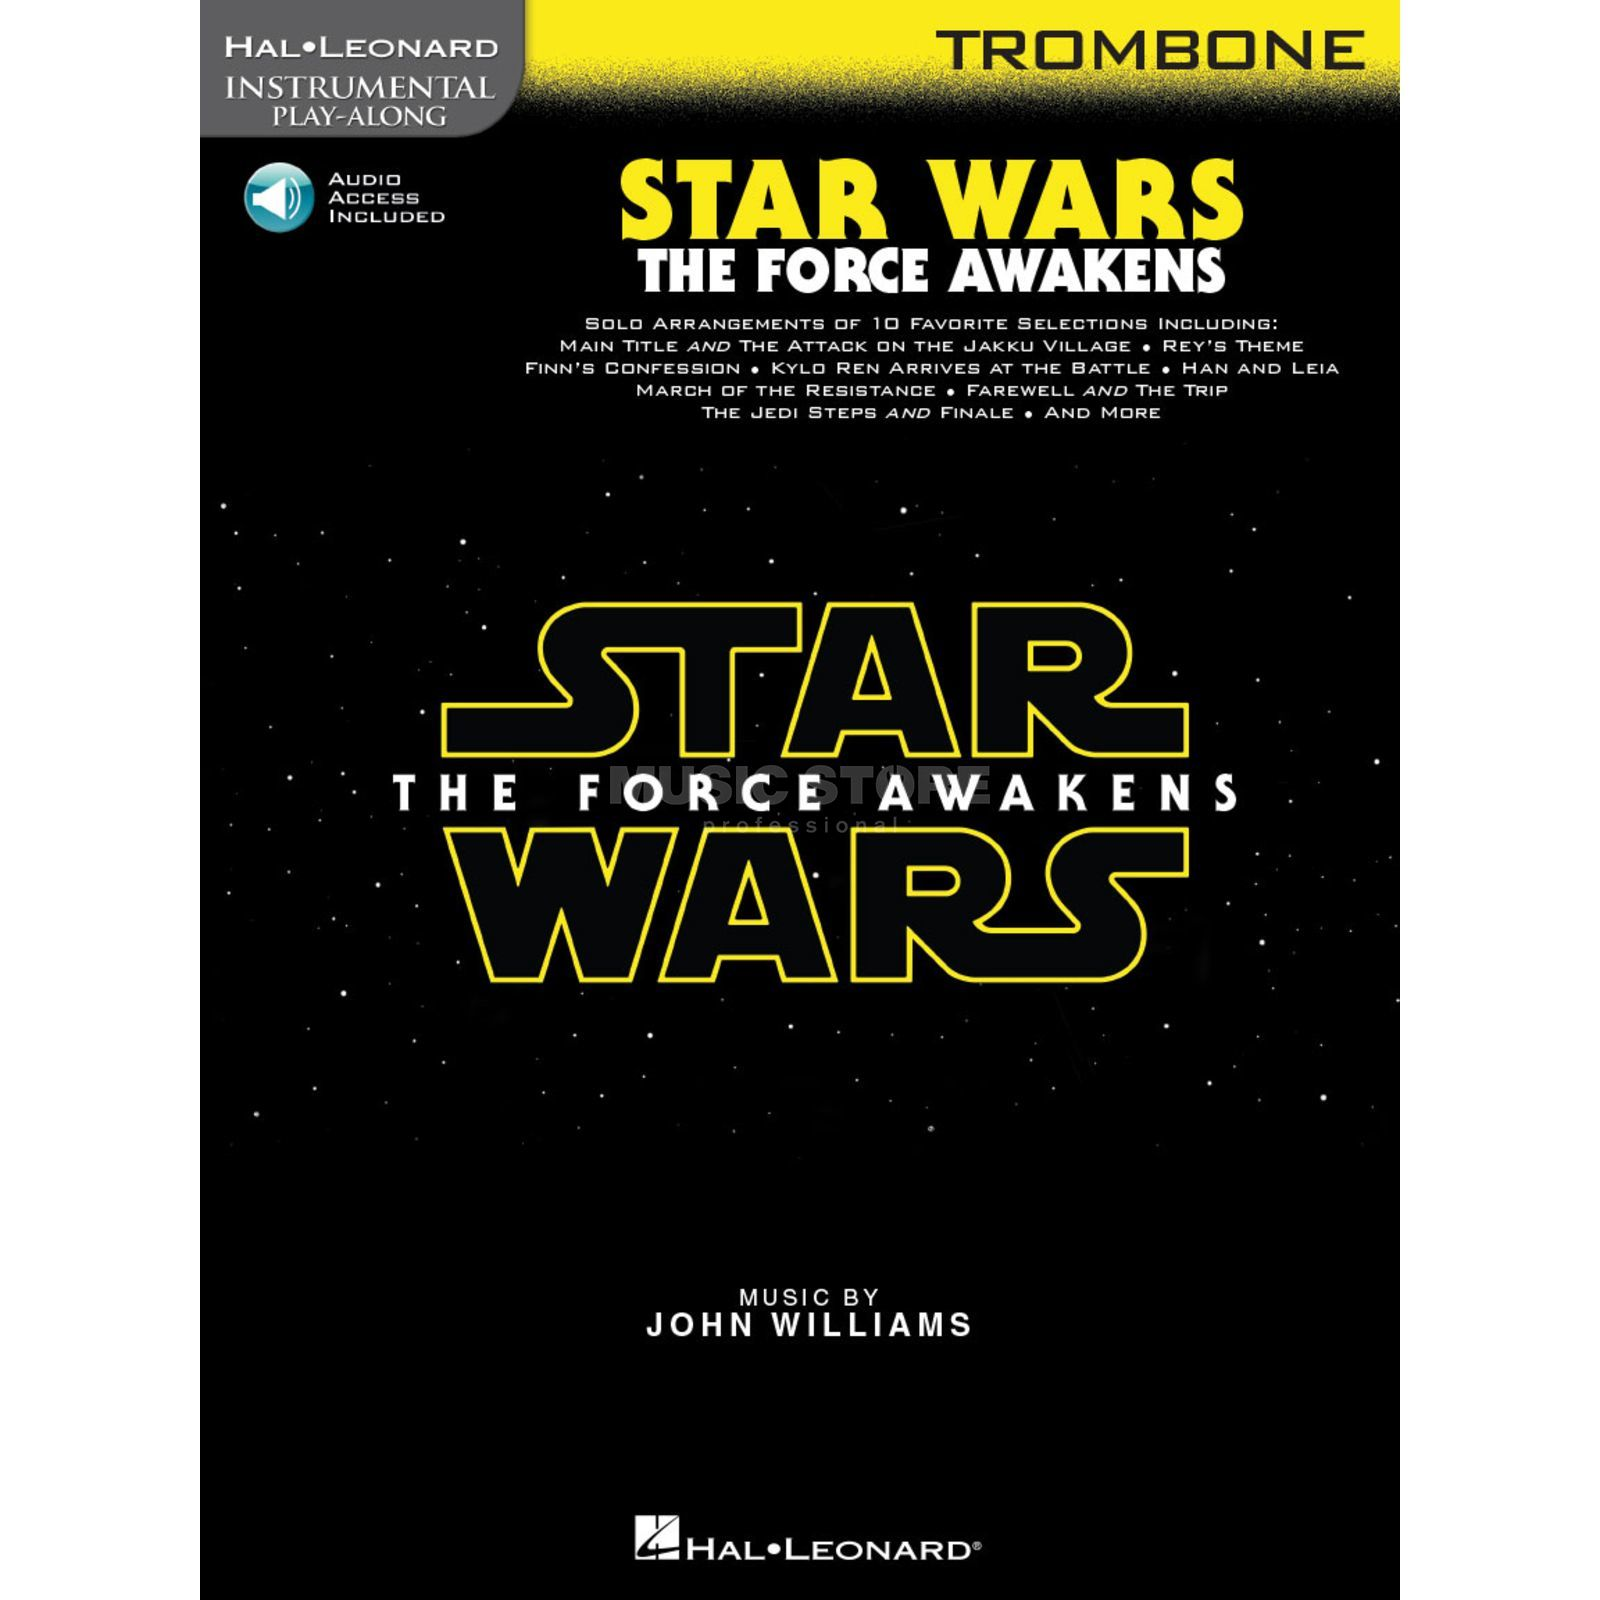 Hal Leonard Instrumental Play-Along: Star Wars - The Force Awakens - Trombone Imagen del producto